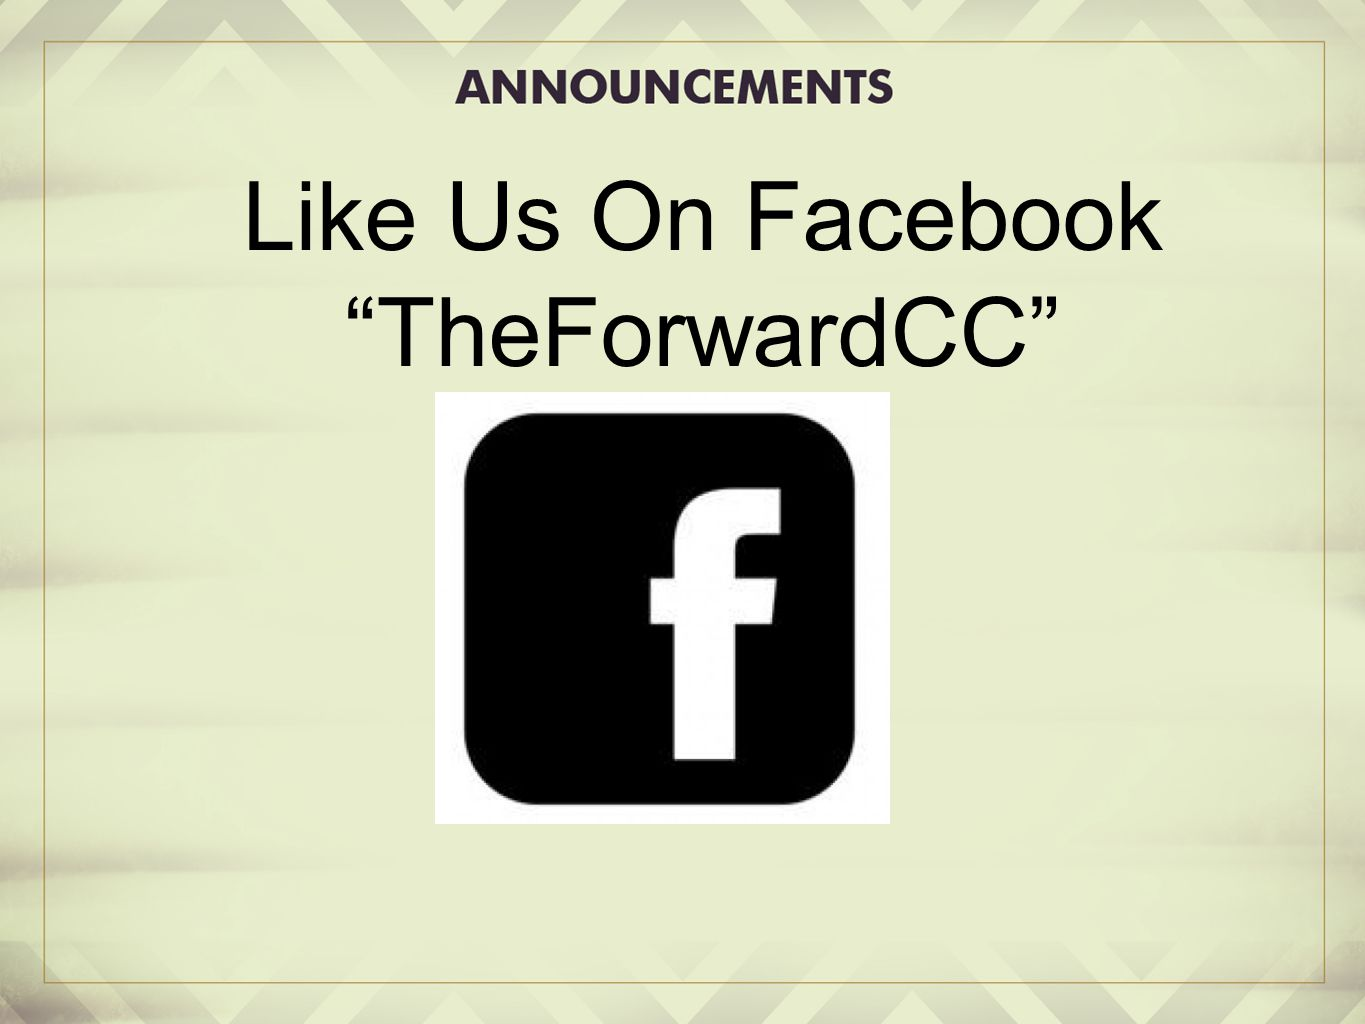 Like Us On Facebook TheForwardCC